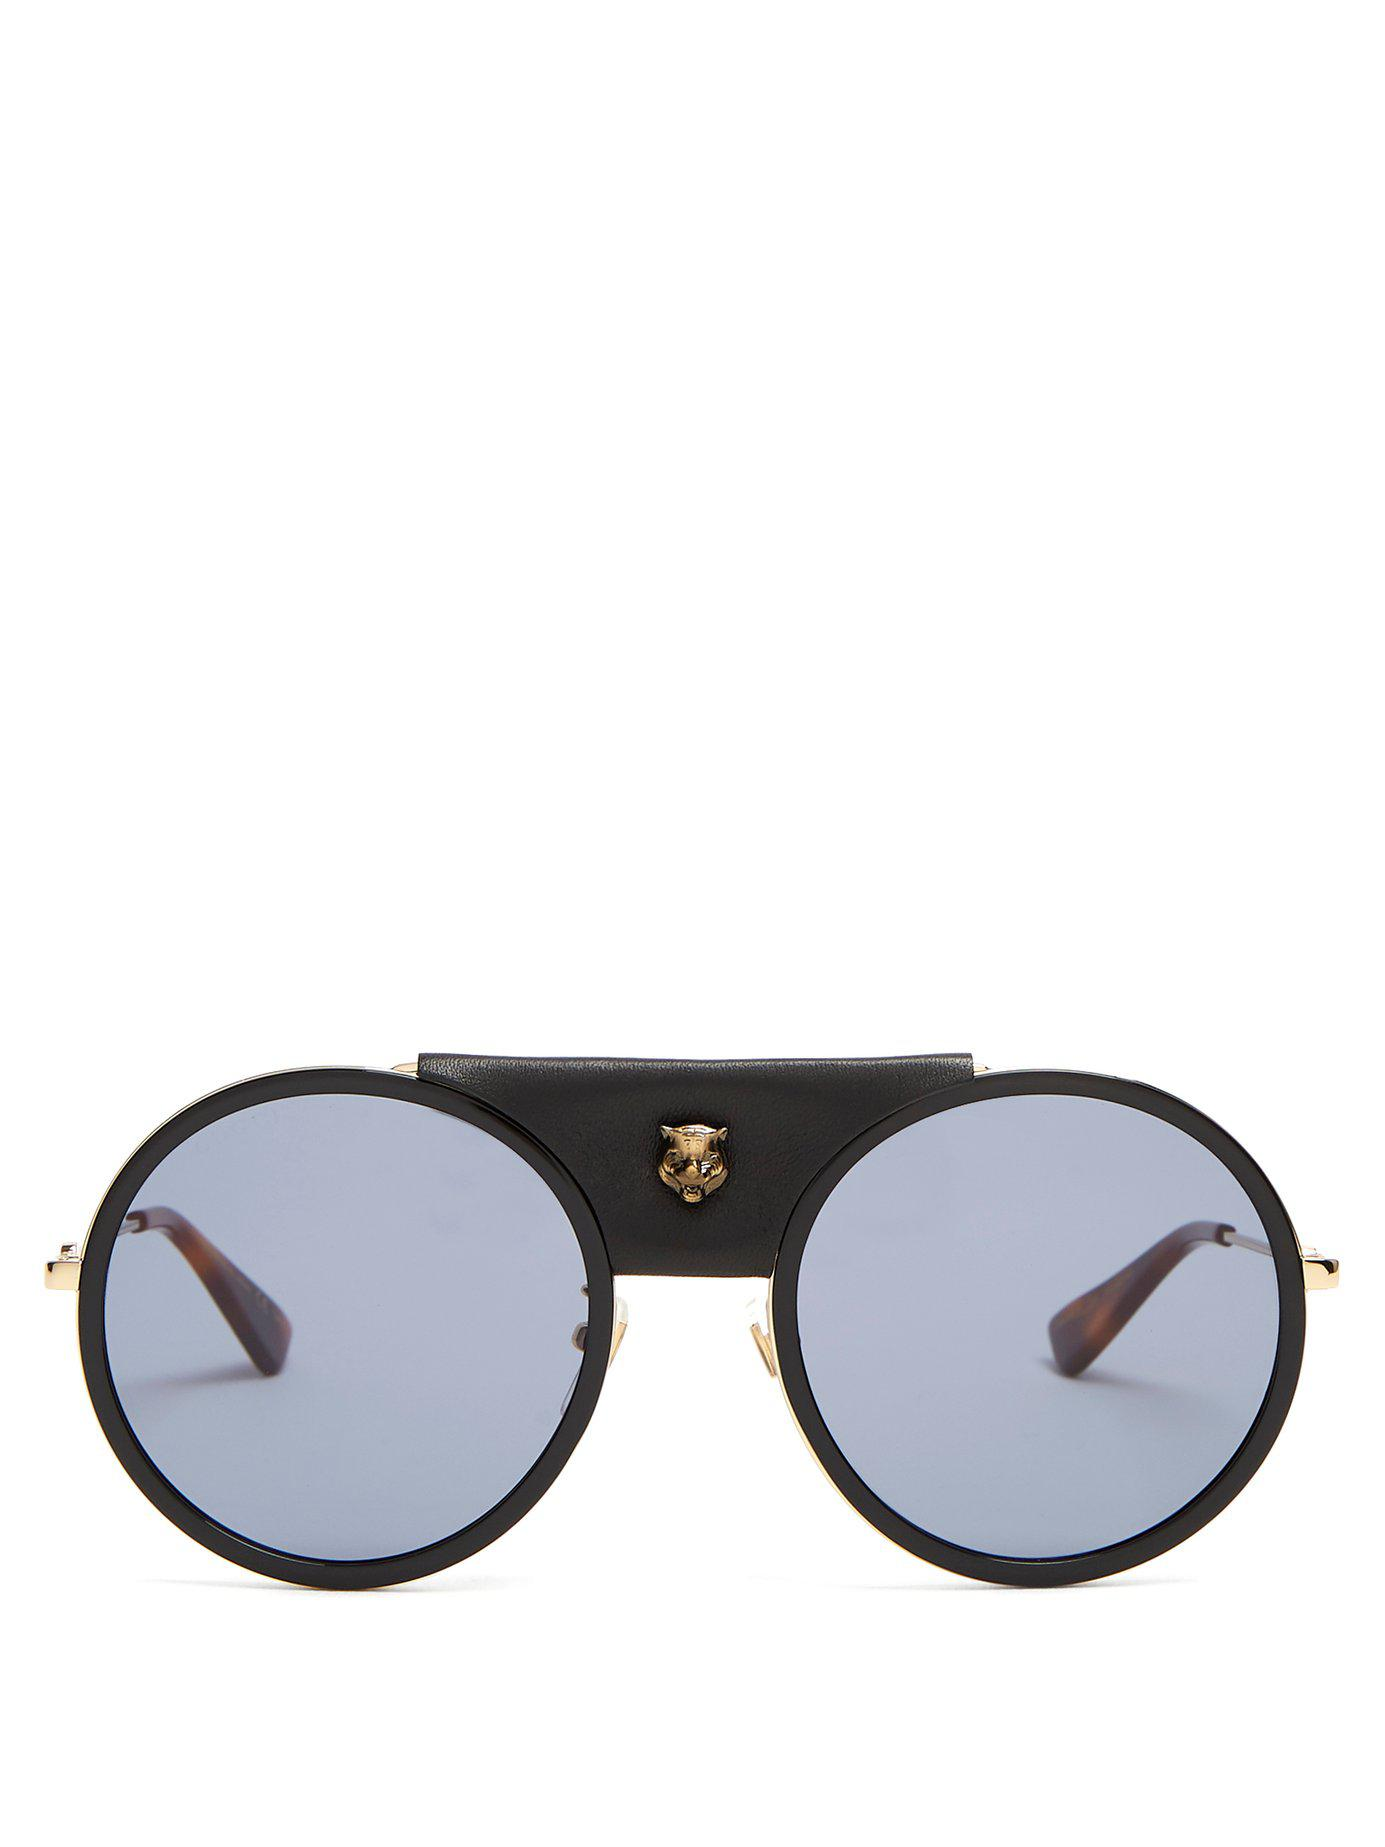 2409ff43353 Lyst - Gucci Round Frame Leather Trimmed Metal Sunglasses in Black ...